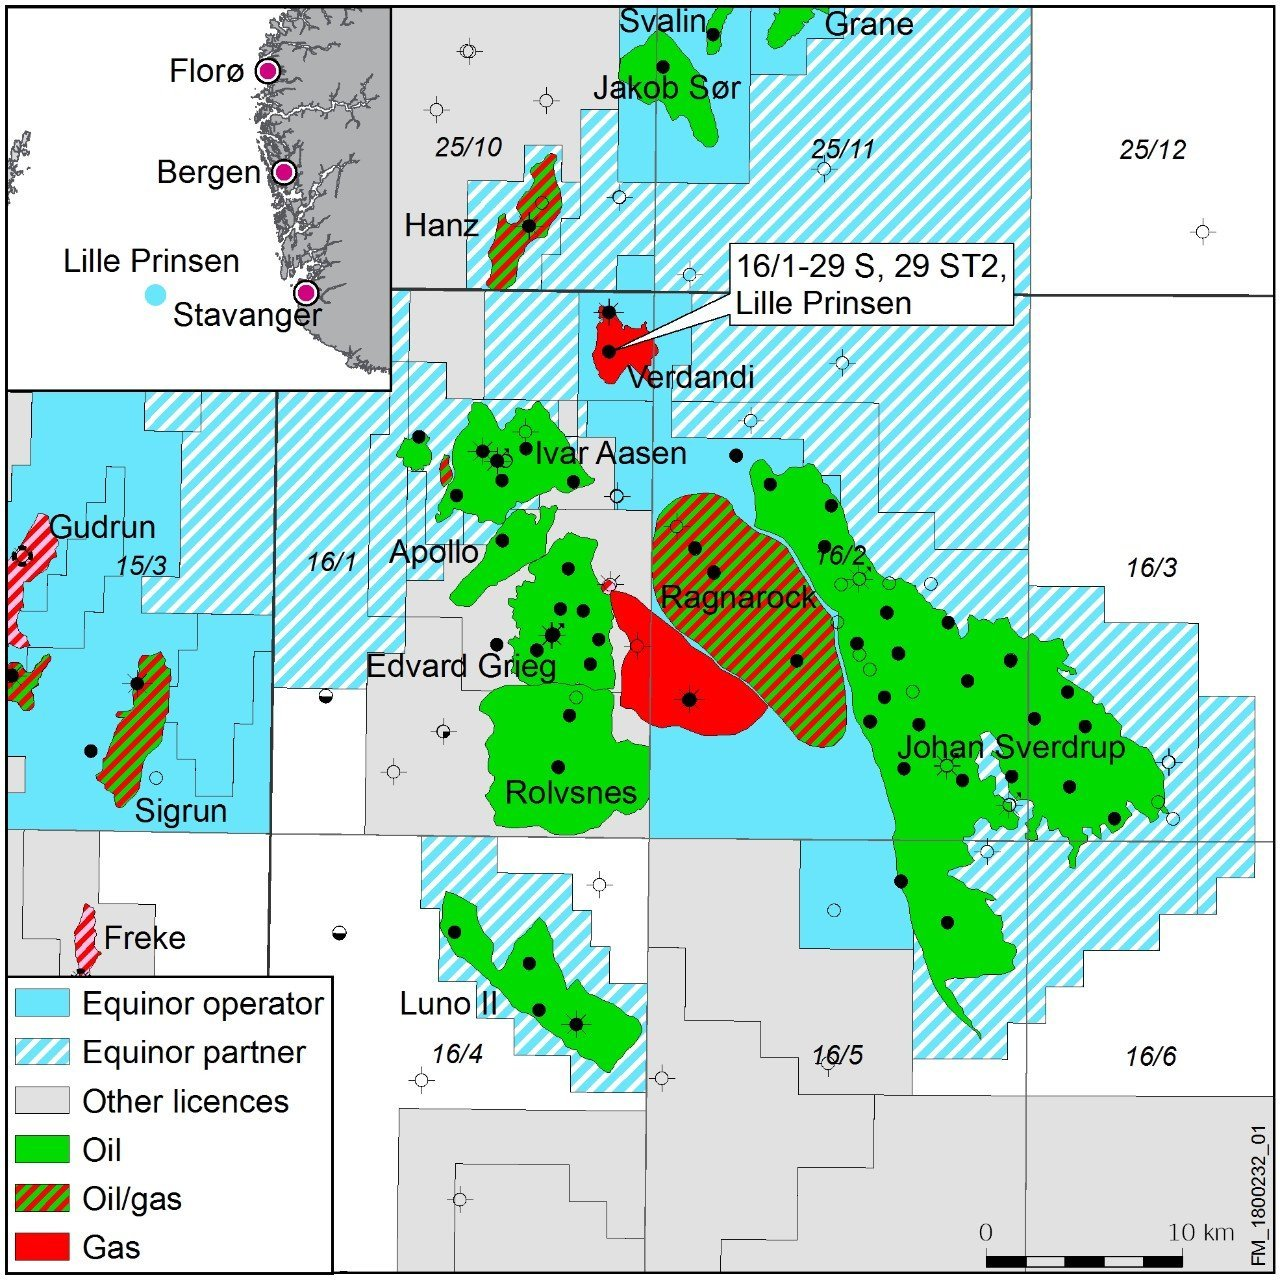 Equinor has made an oil discovery in the Utsira High area.